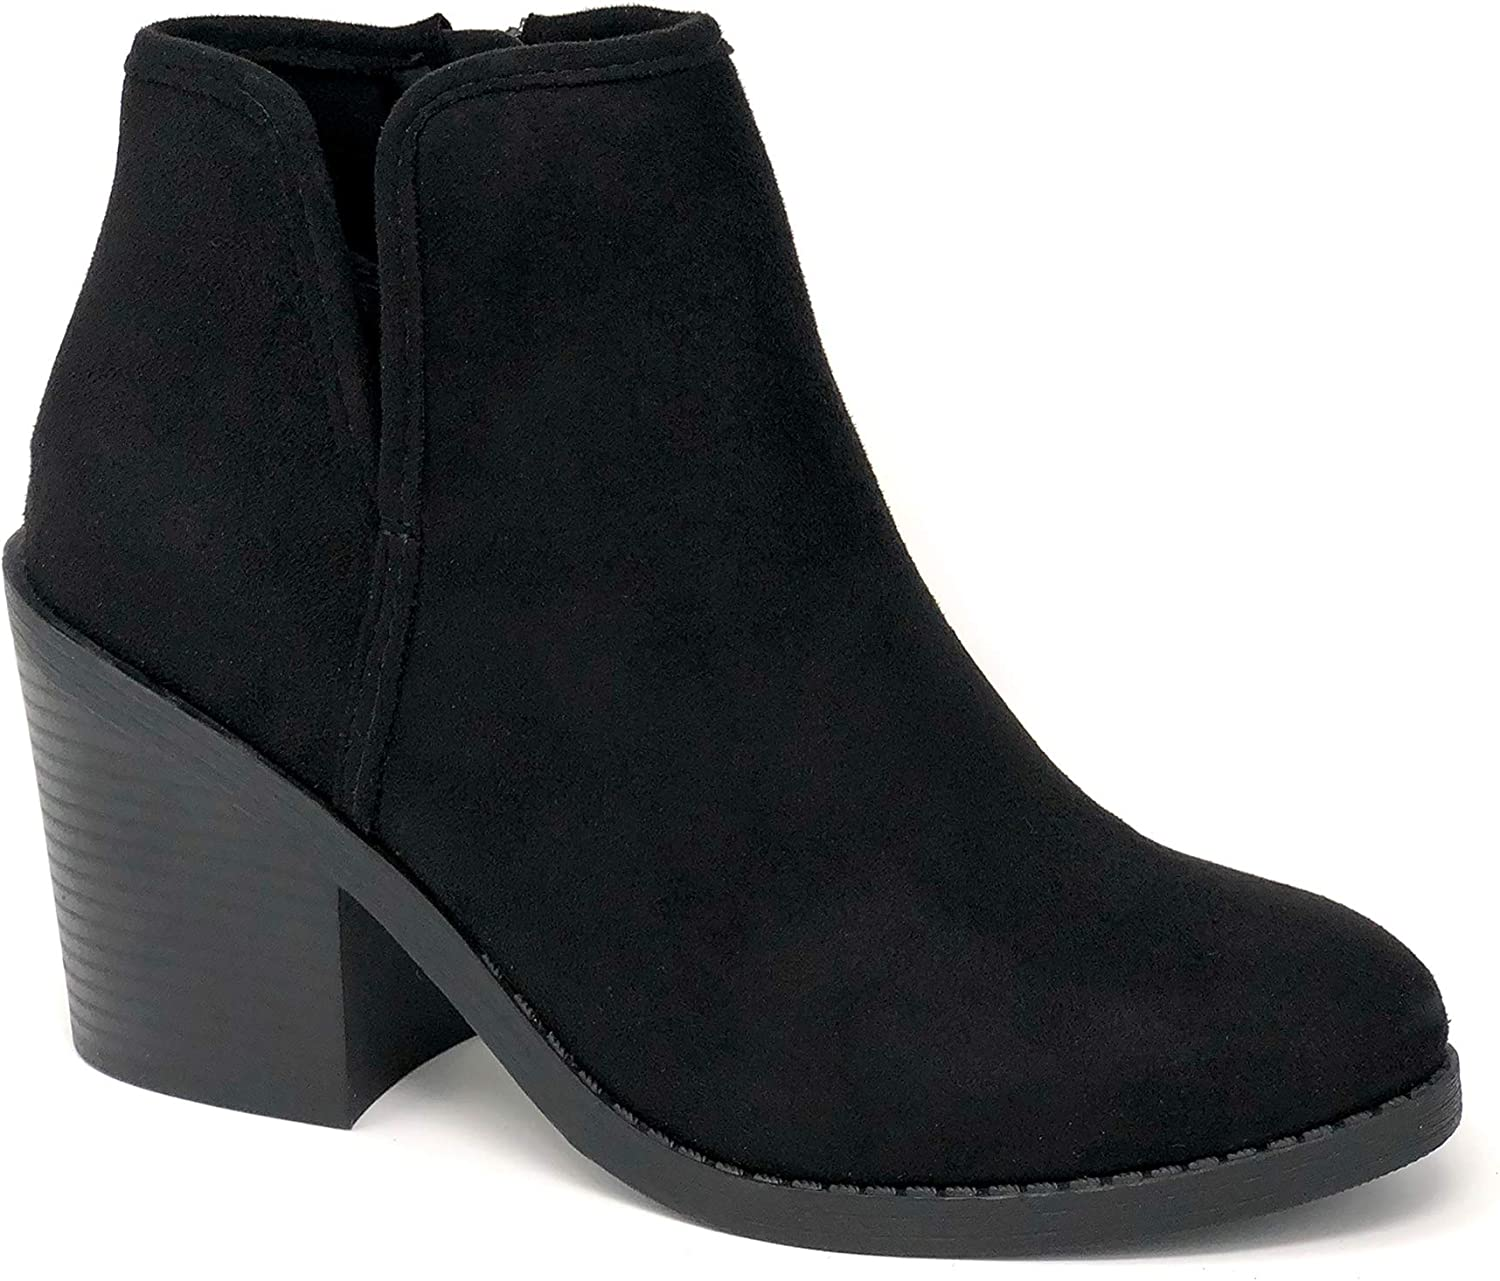 Soda Target Women's Chunky High Heel Ankle Bootie